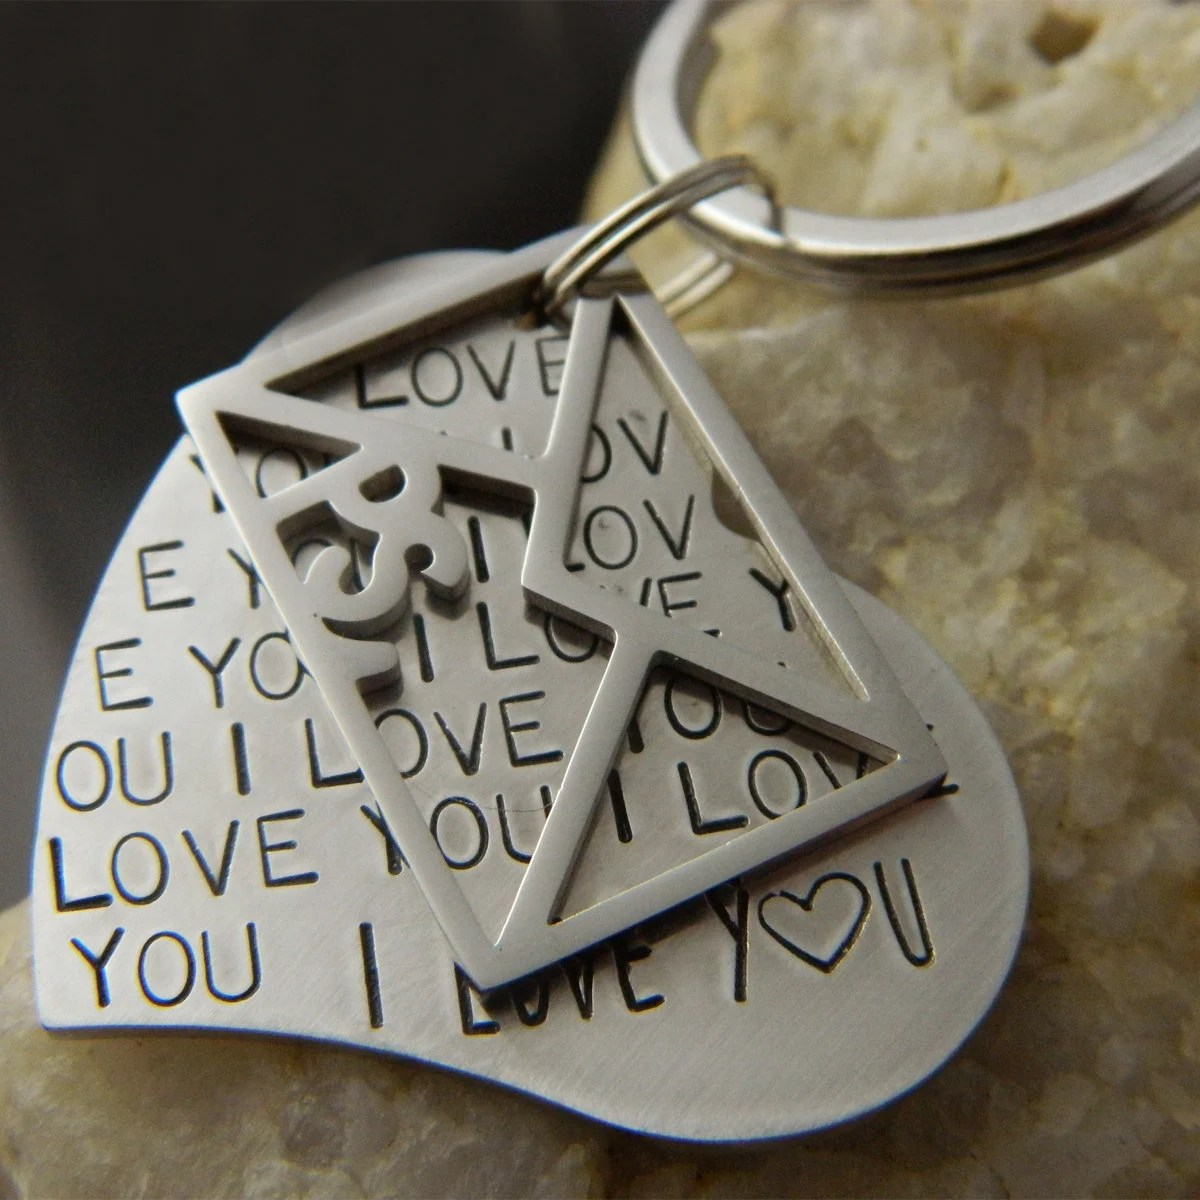 PS I Love You Letter Long Distance Relationship Keychain Etsy